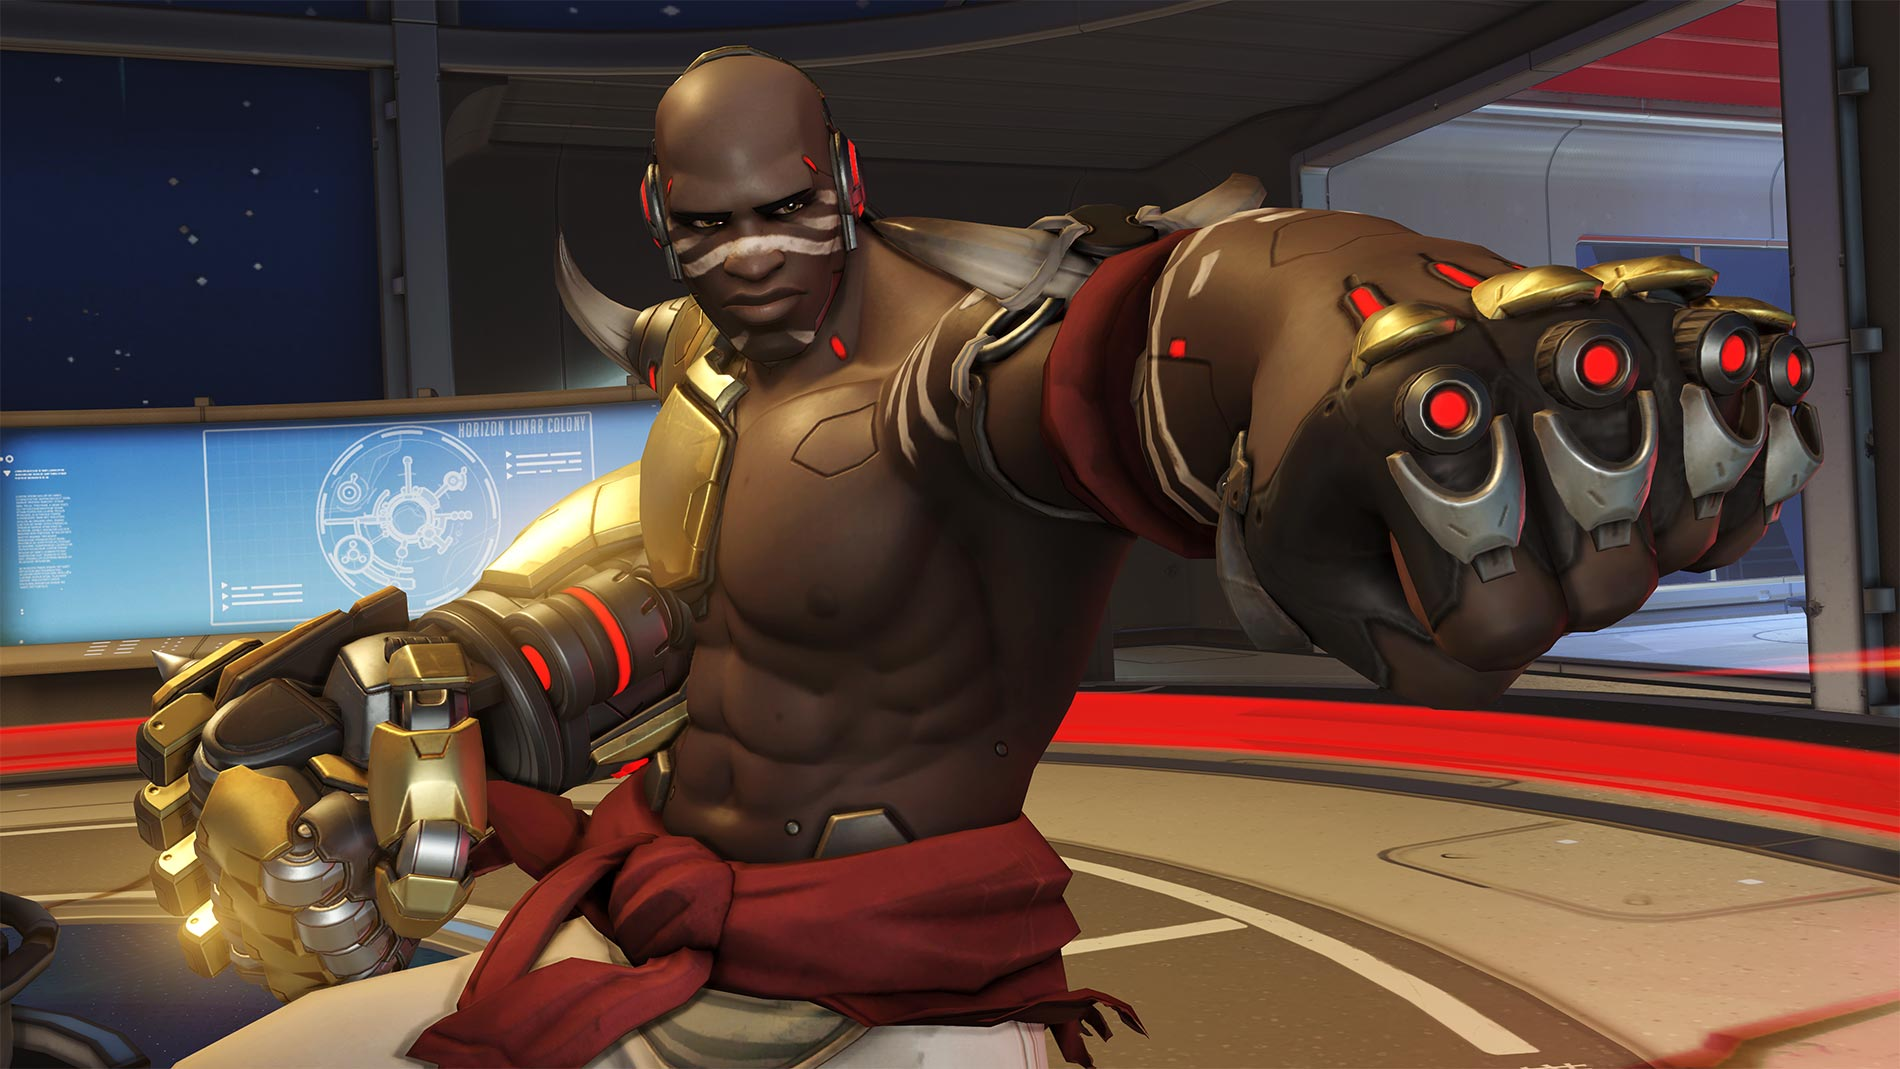 doomfist-screenshot-001.jpg